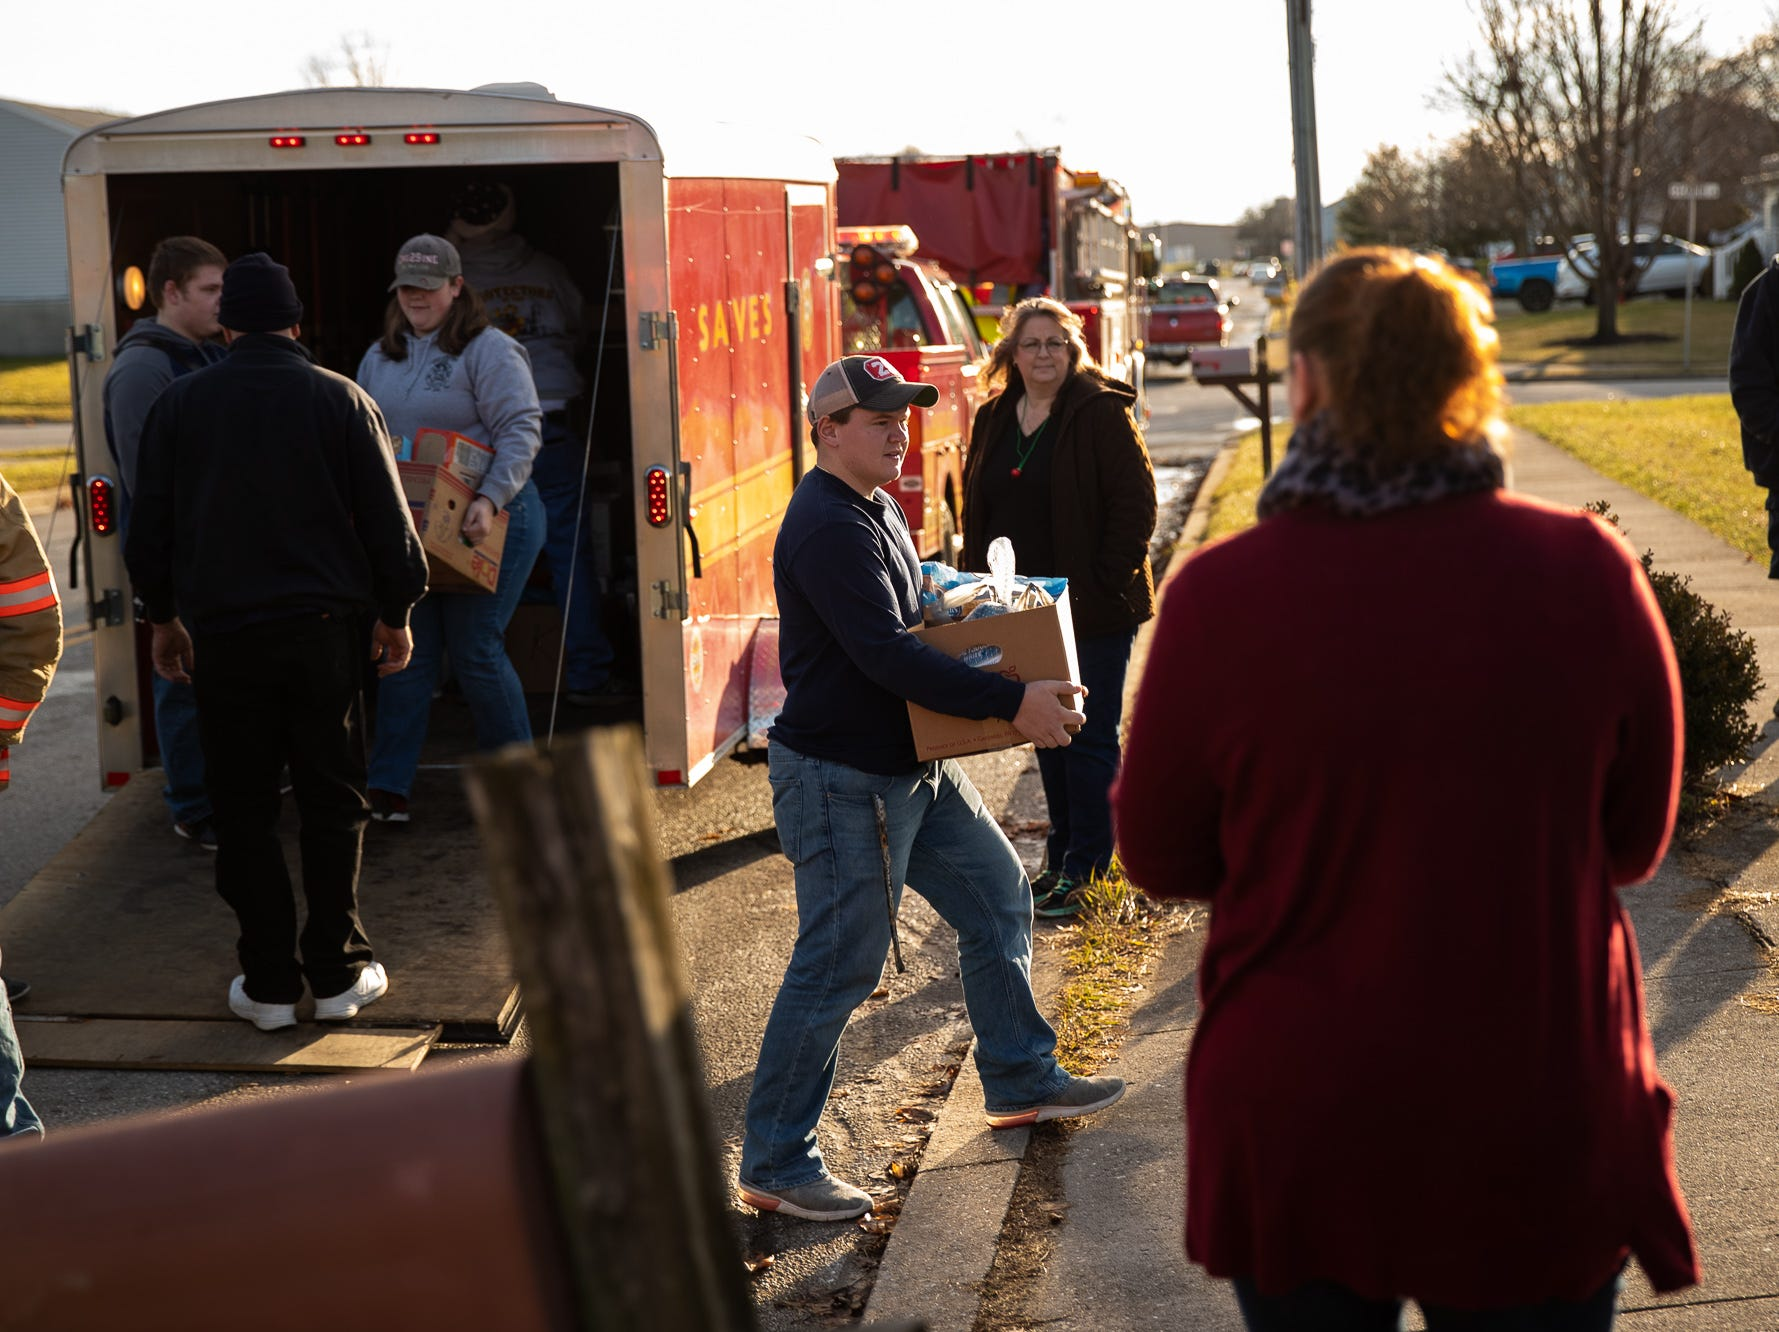 Firefighter Brady Cromer carries presents during the S.A.V.E.S Project Santa, Saturday, Dec. 22, 2018, in McSherrystown Borough. The S.A.V.E.S Project Santa donated food, toys, and clothing to 12 local families in need.